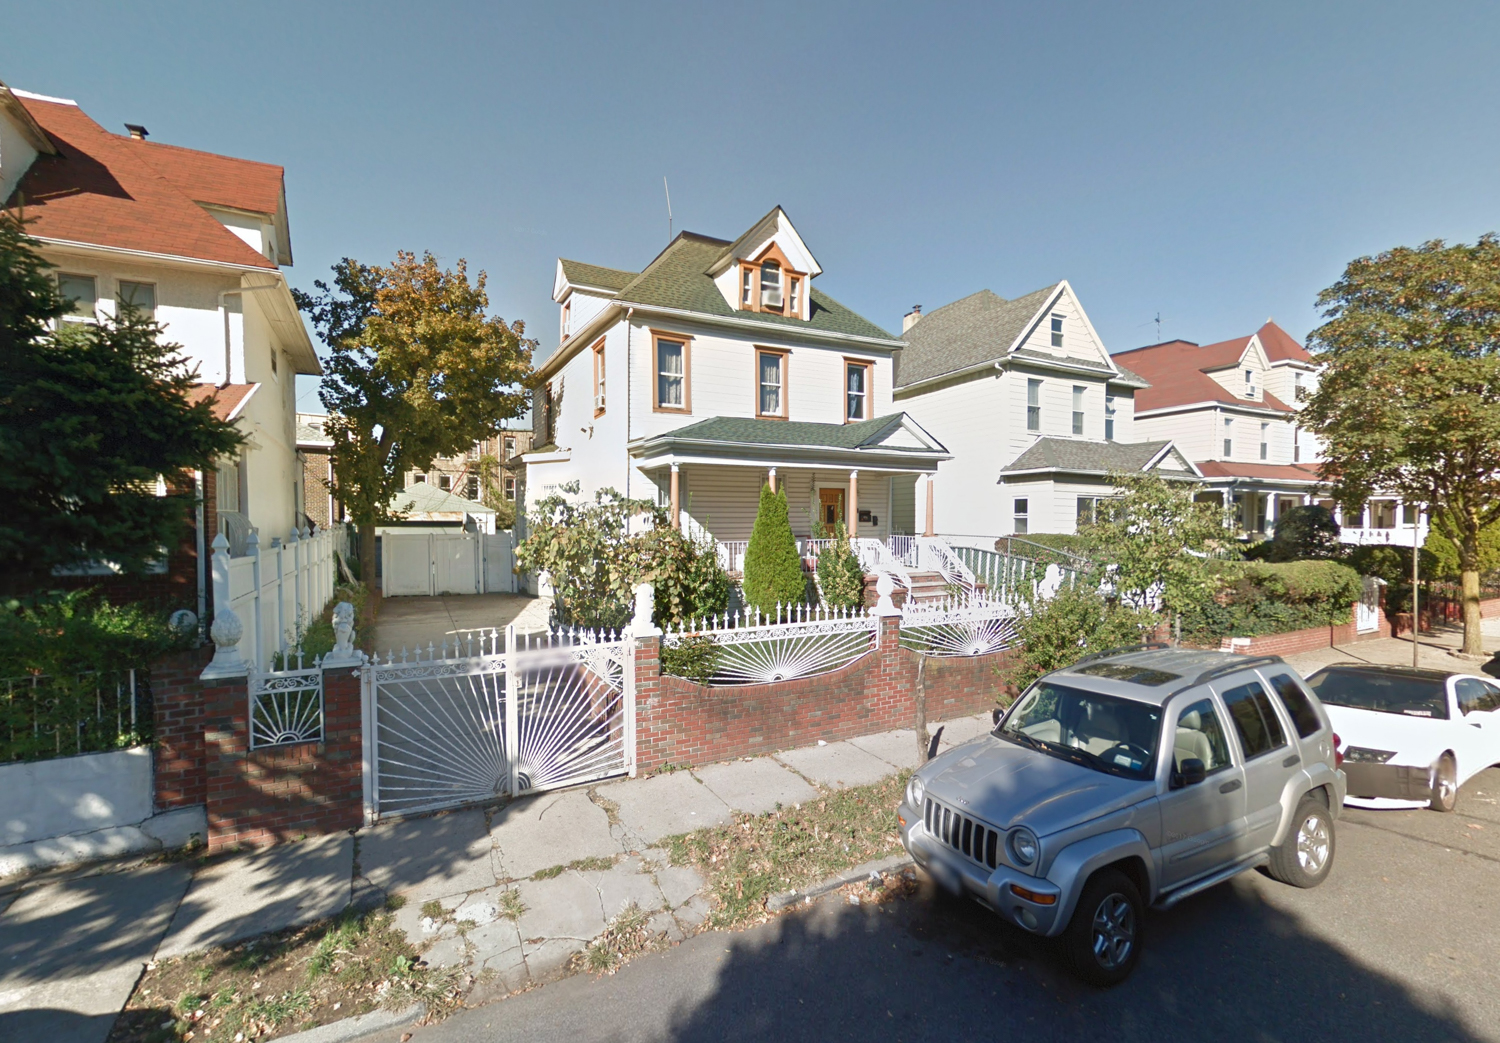 486 East 28th Street, via Google Maps